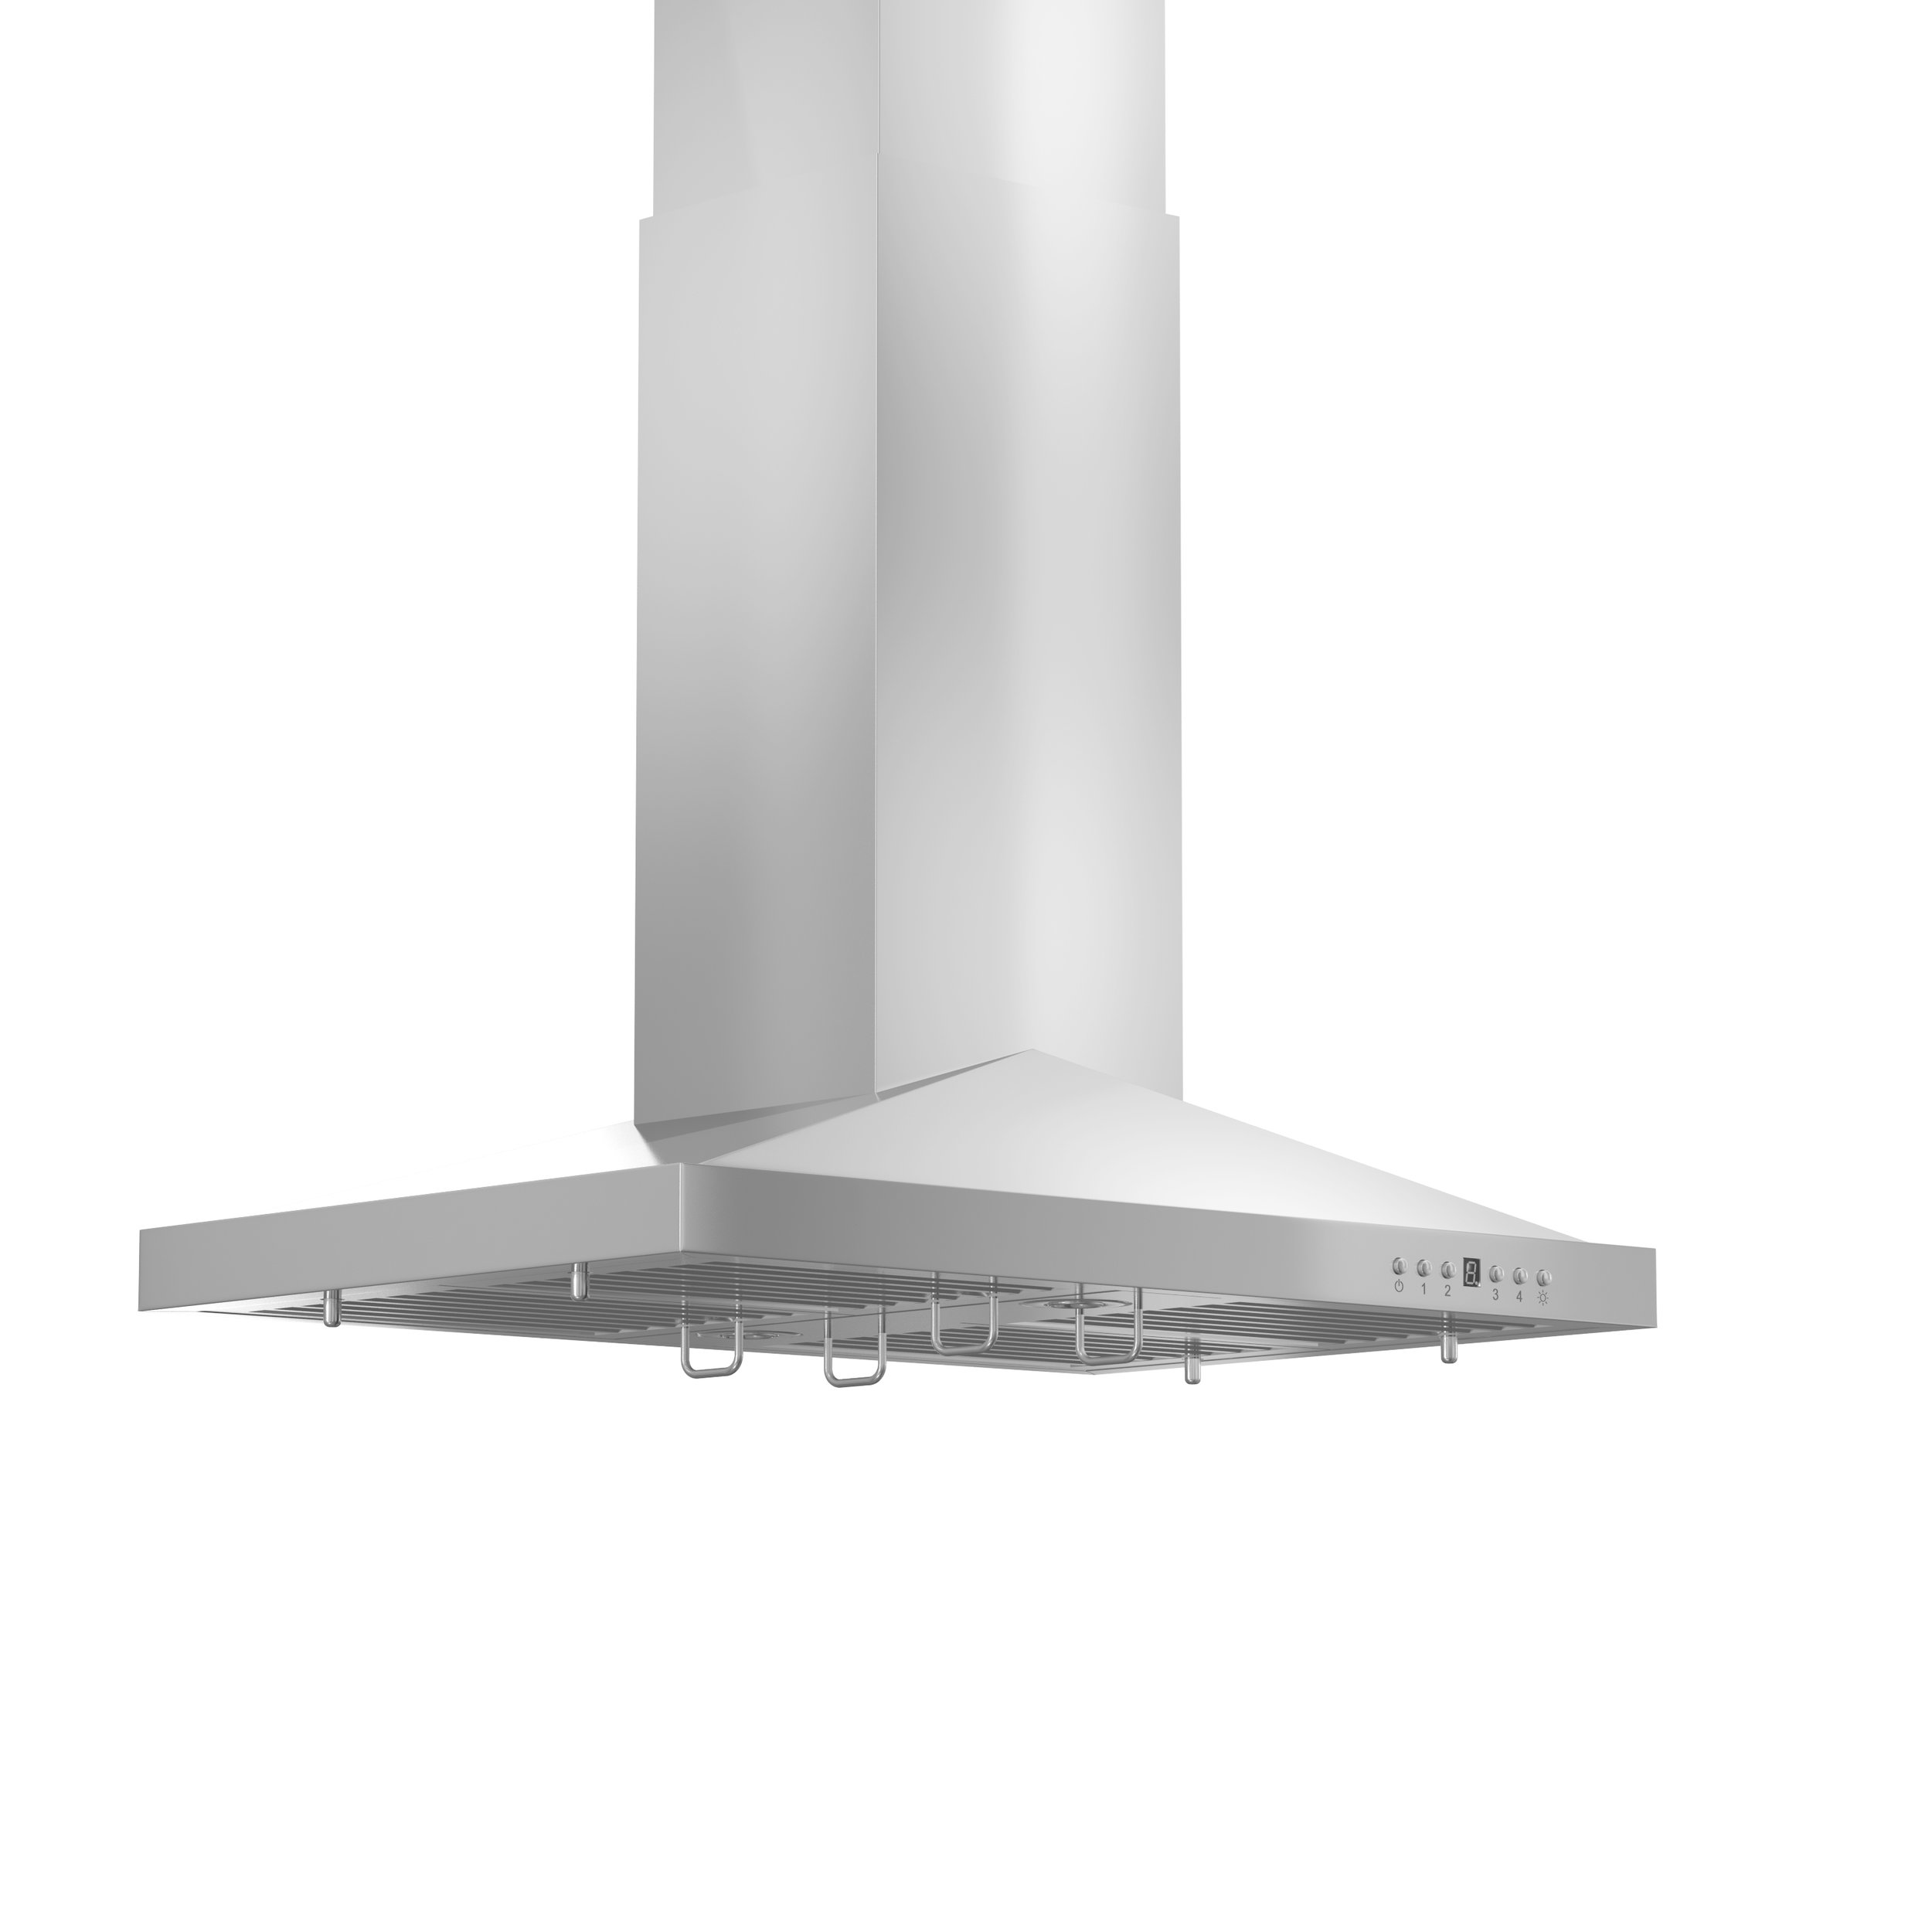 Ductless Stainless GL1i